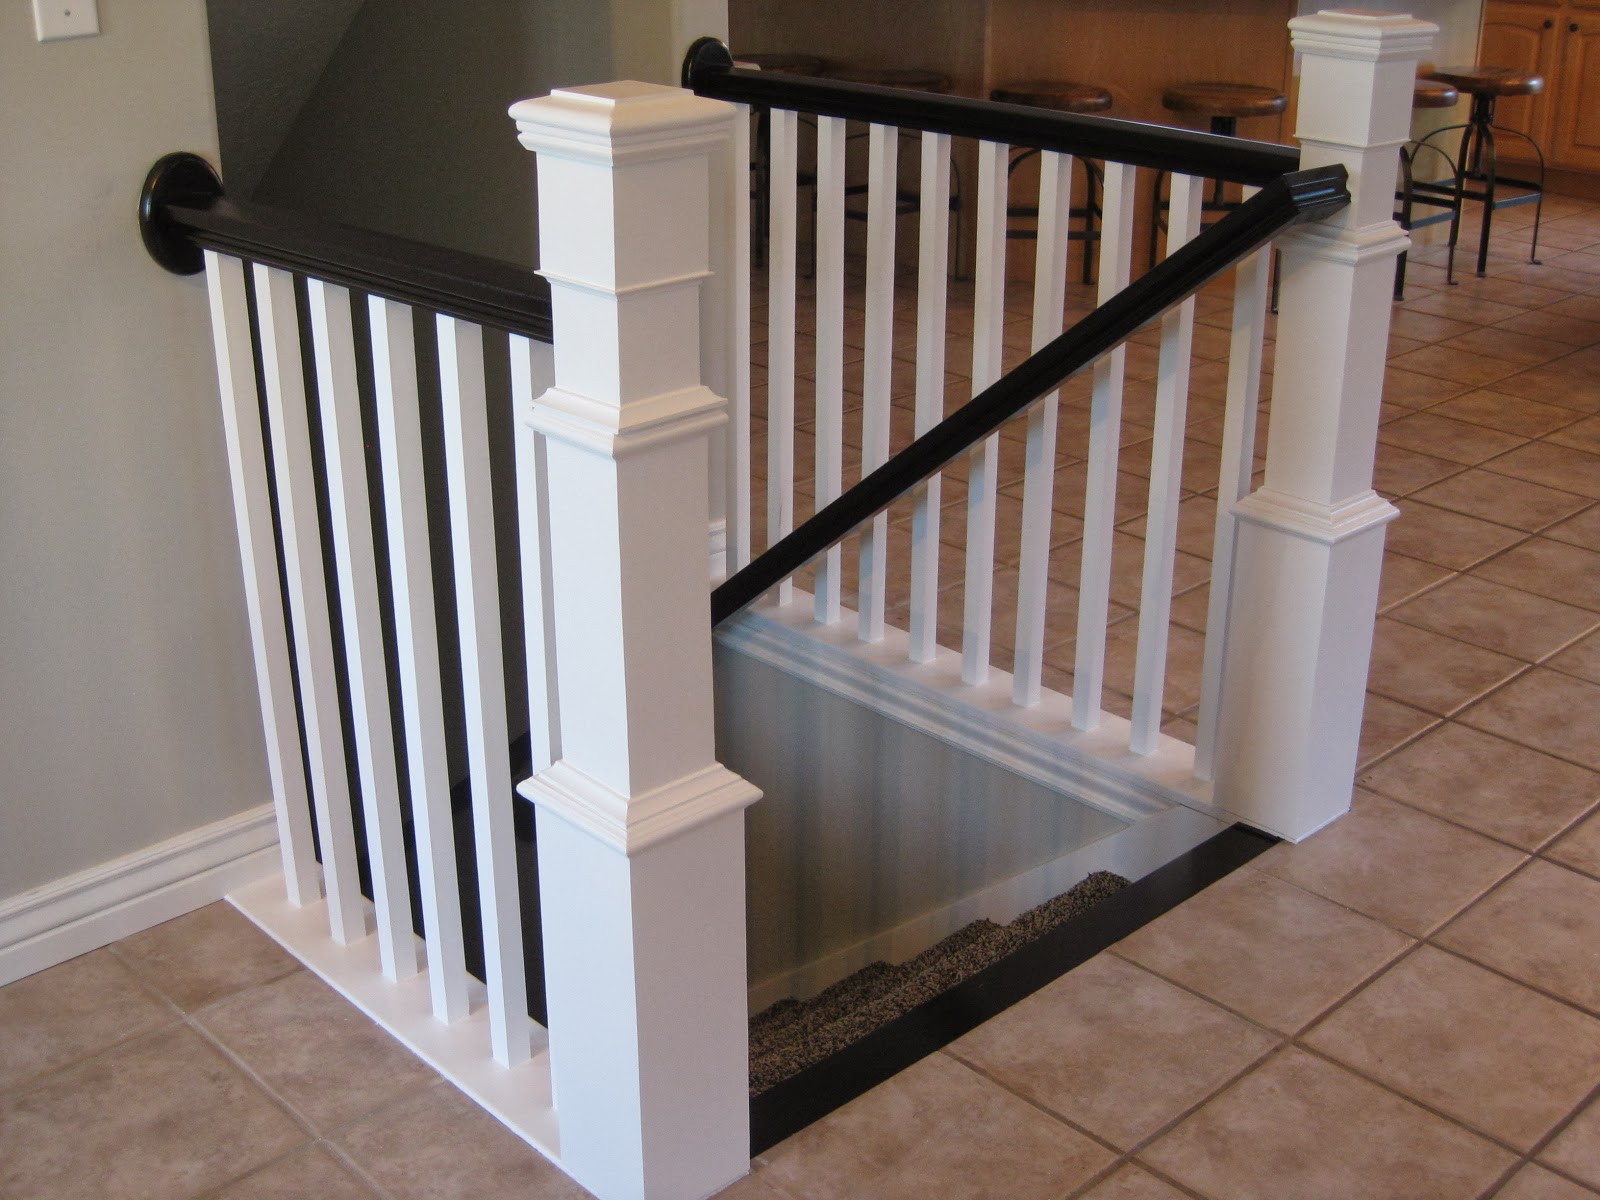 TDA decorating and design: Before & After DIY Stair ...